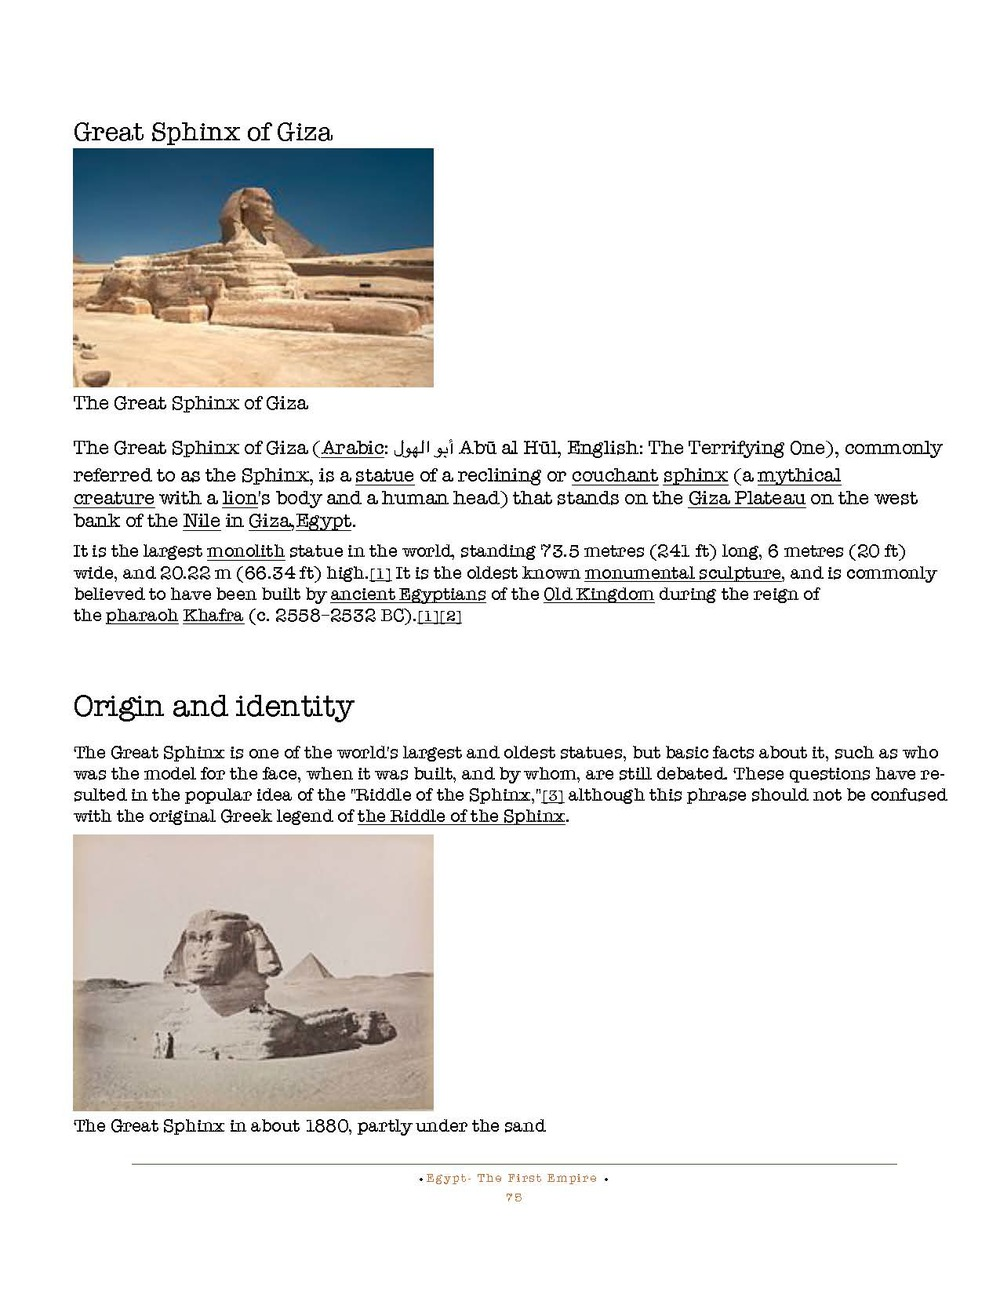 HOCE- Egypt  (First Empire) Notes_Page_075.jpg